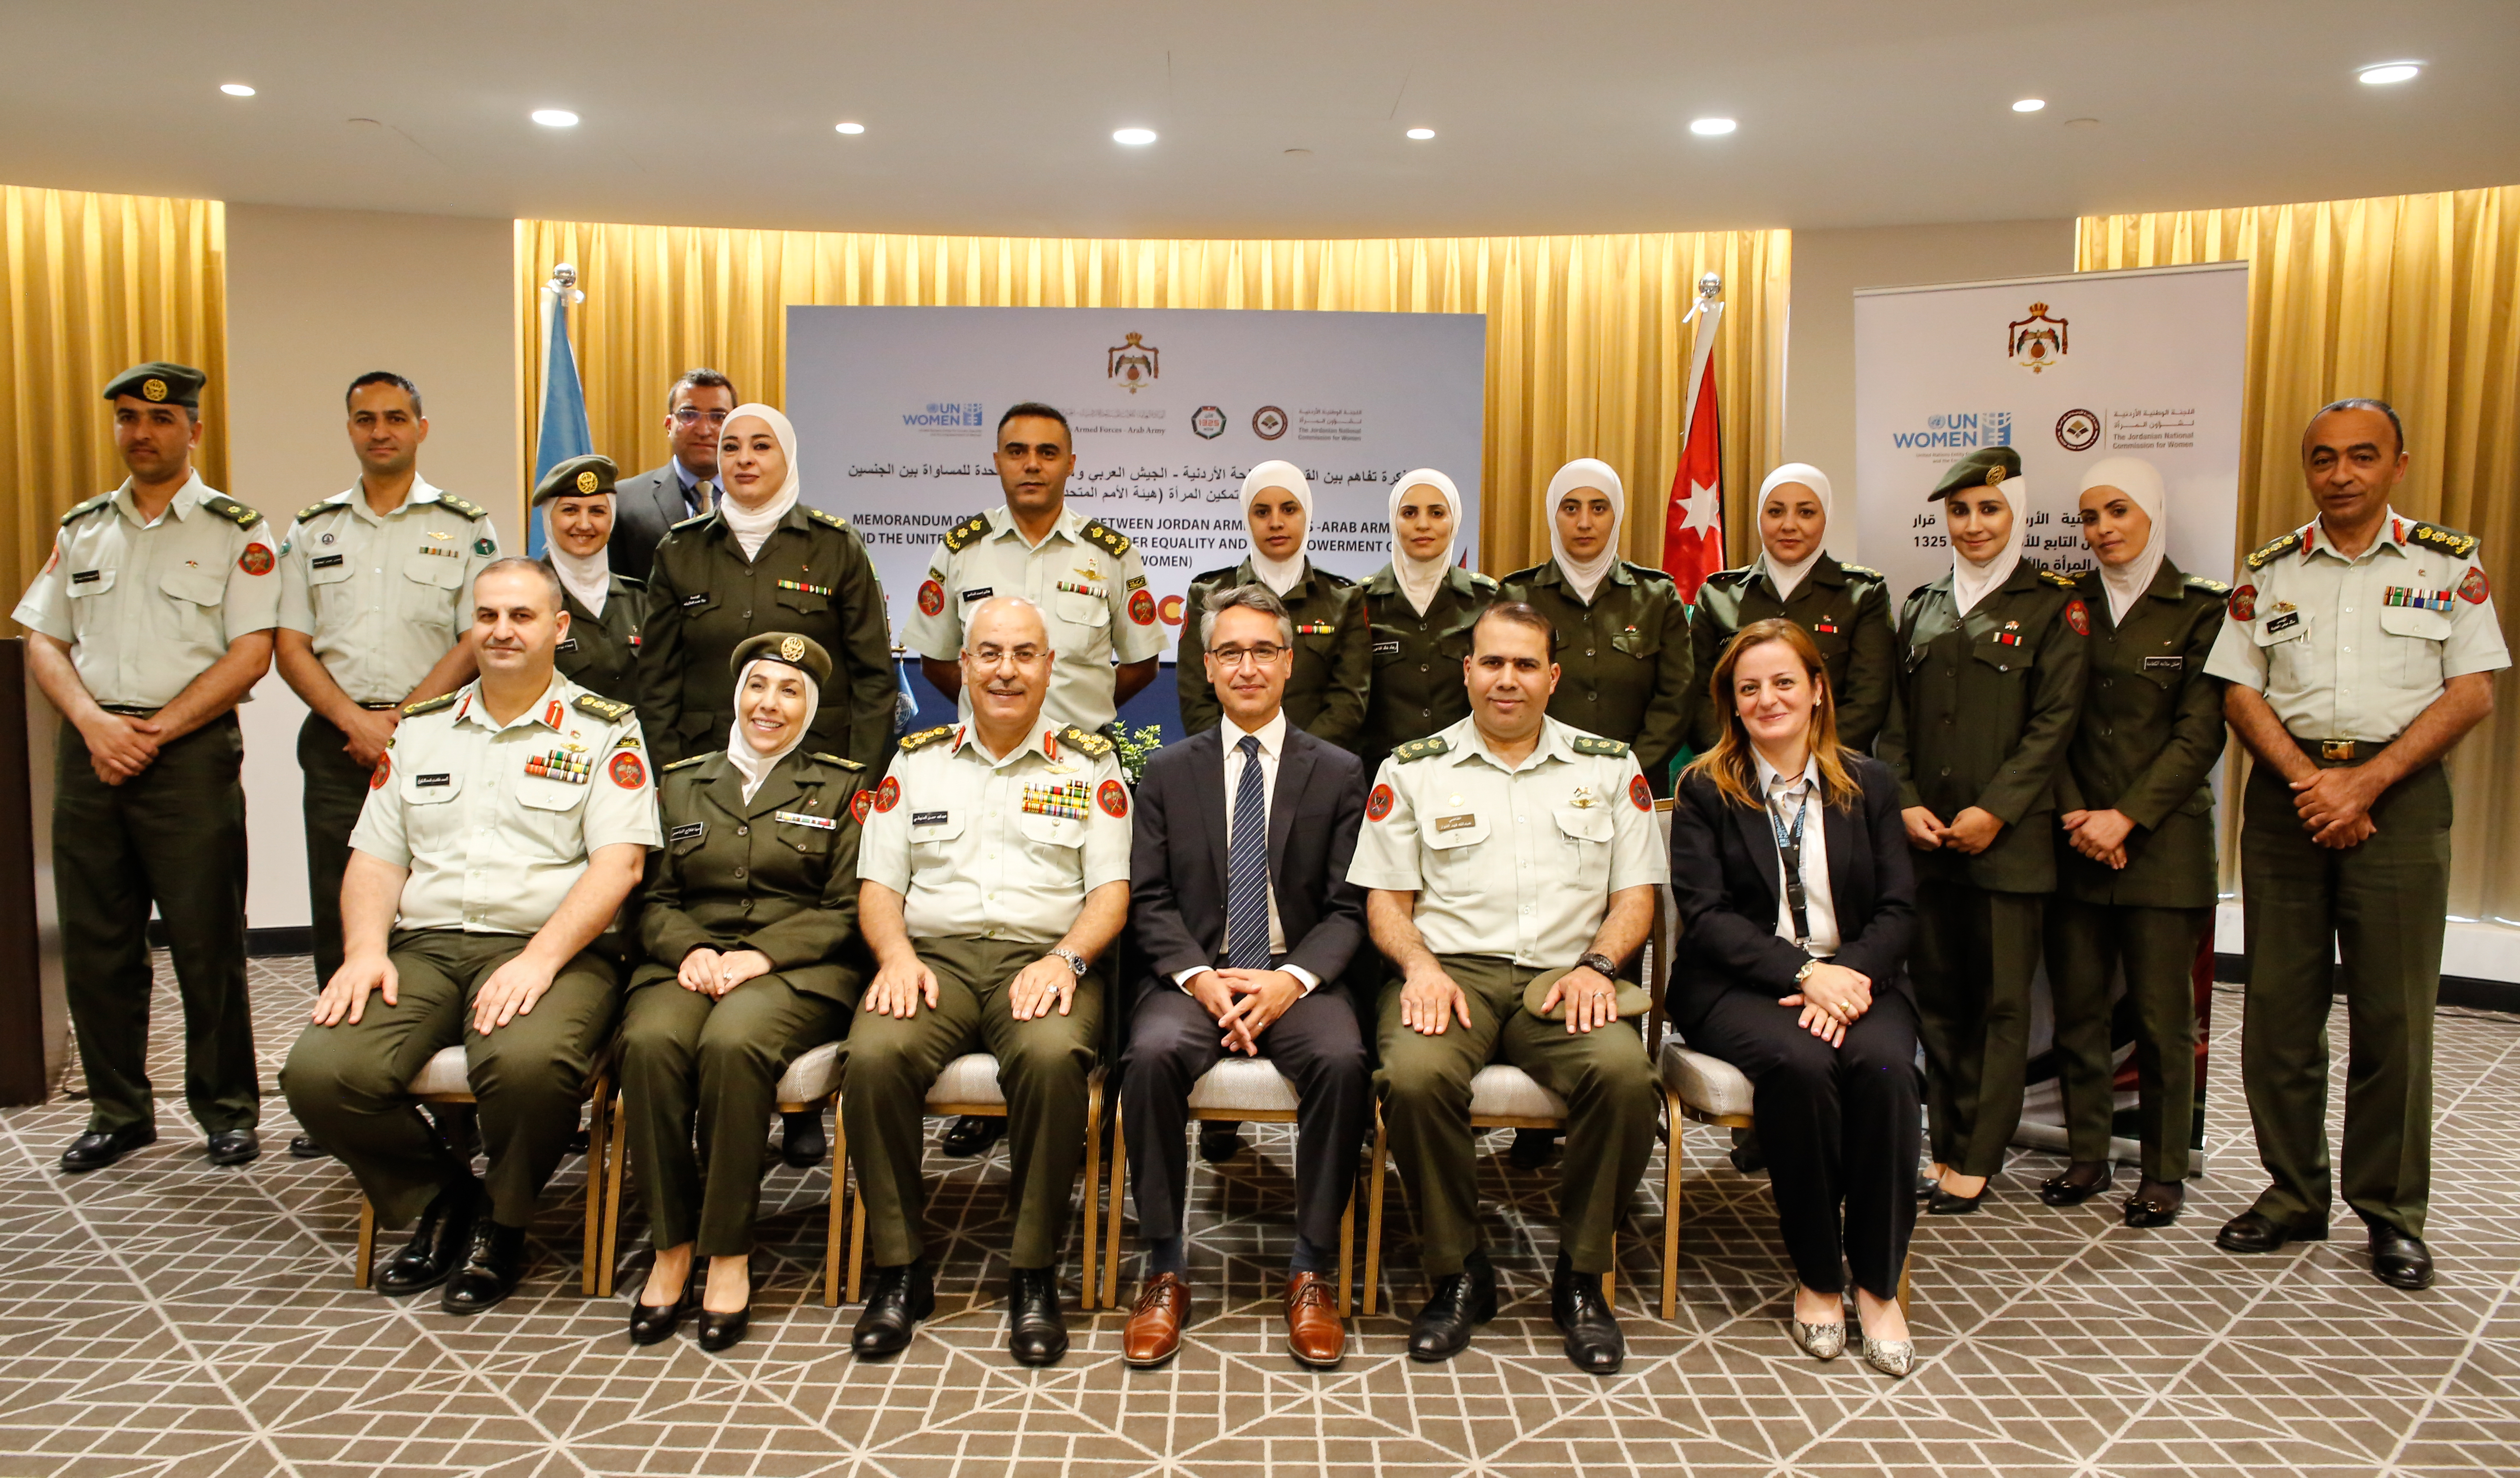 JORDAN ARMED FORCES – Armed Forces AND UN WOMEN SIGN MEMORANDUM OF UNDERSTANDING